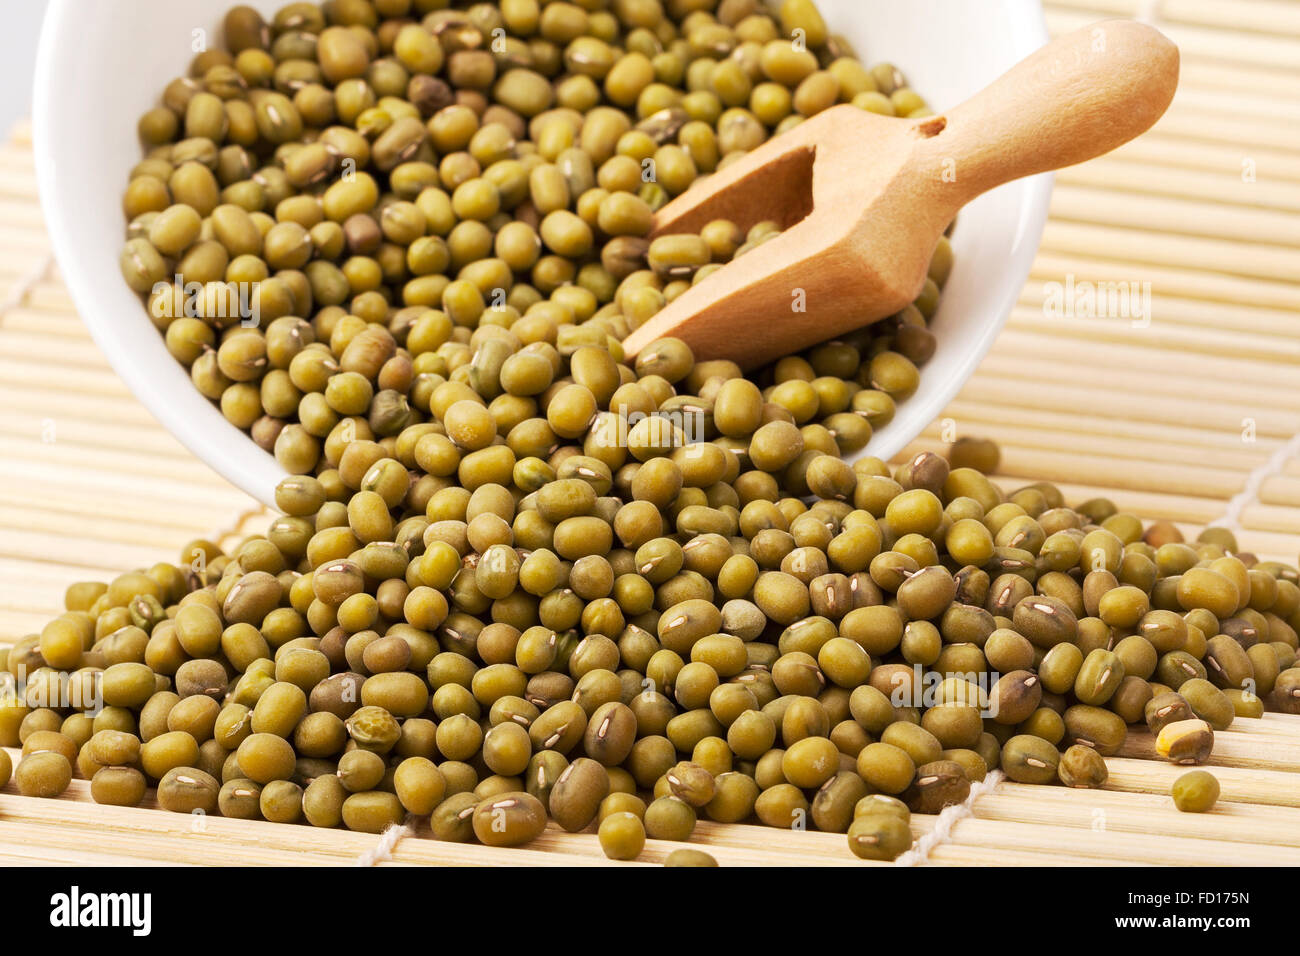 he mung or moong bean is the seed of Vigna radiata, native to the Indian subcontinent, and mainly cultivated in - Stock Image